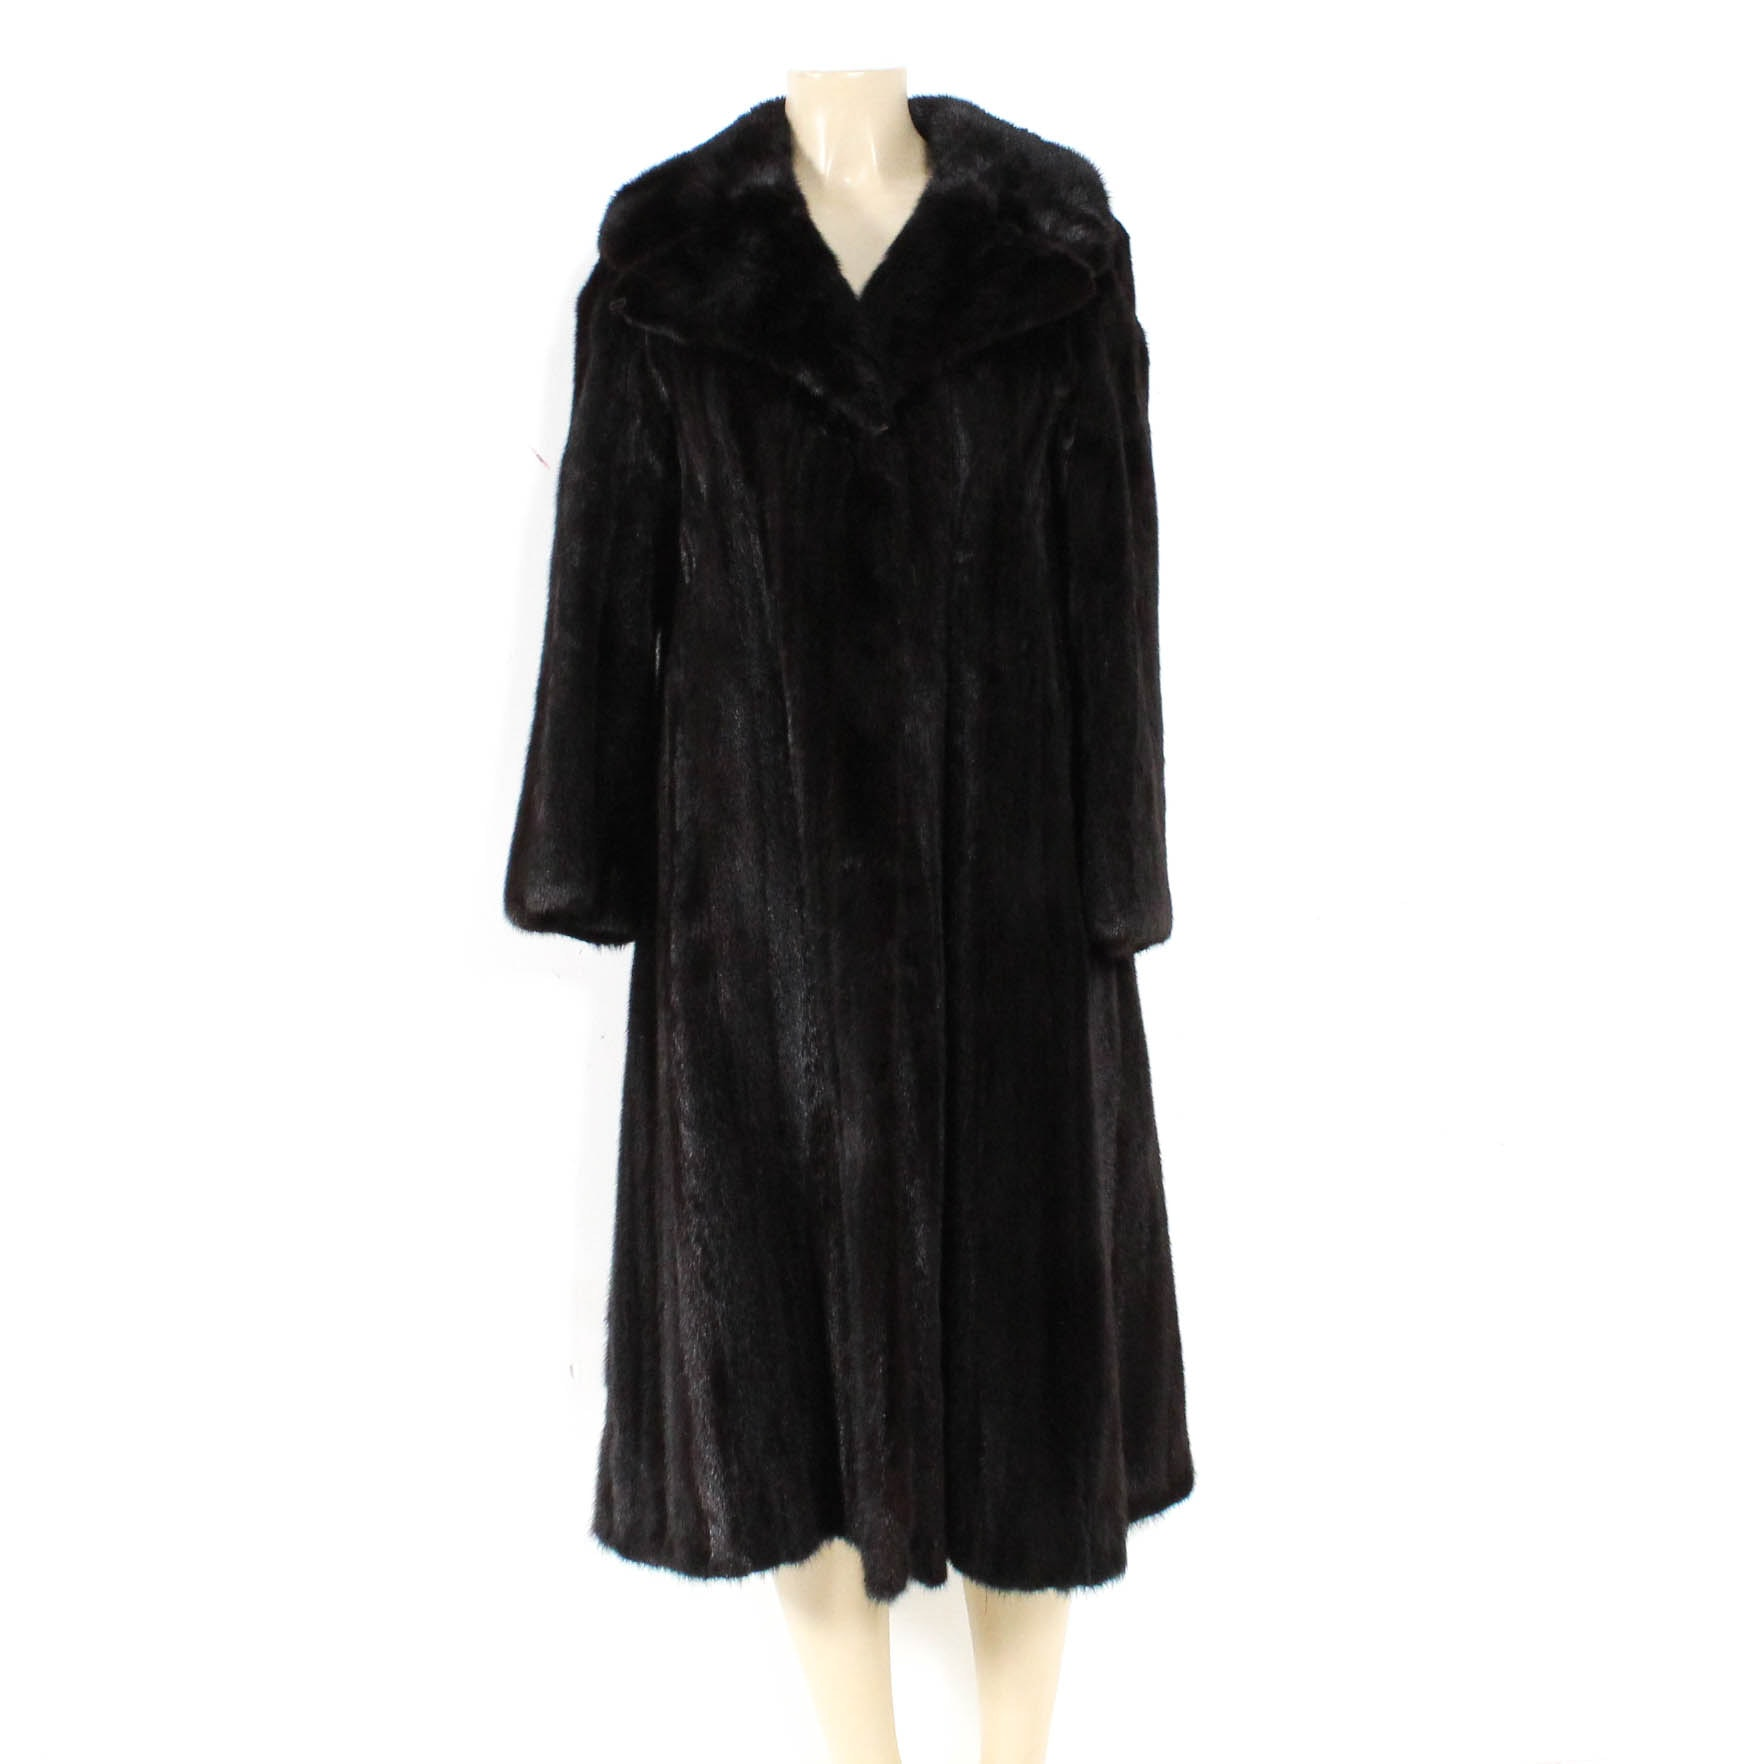 Mink Fur Full-Length Coat with Belt by The Union